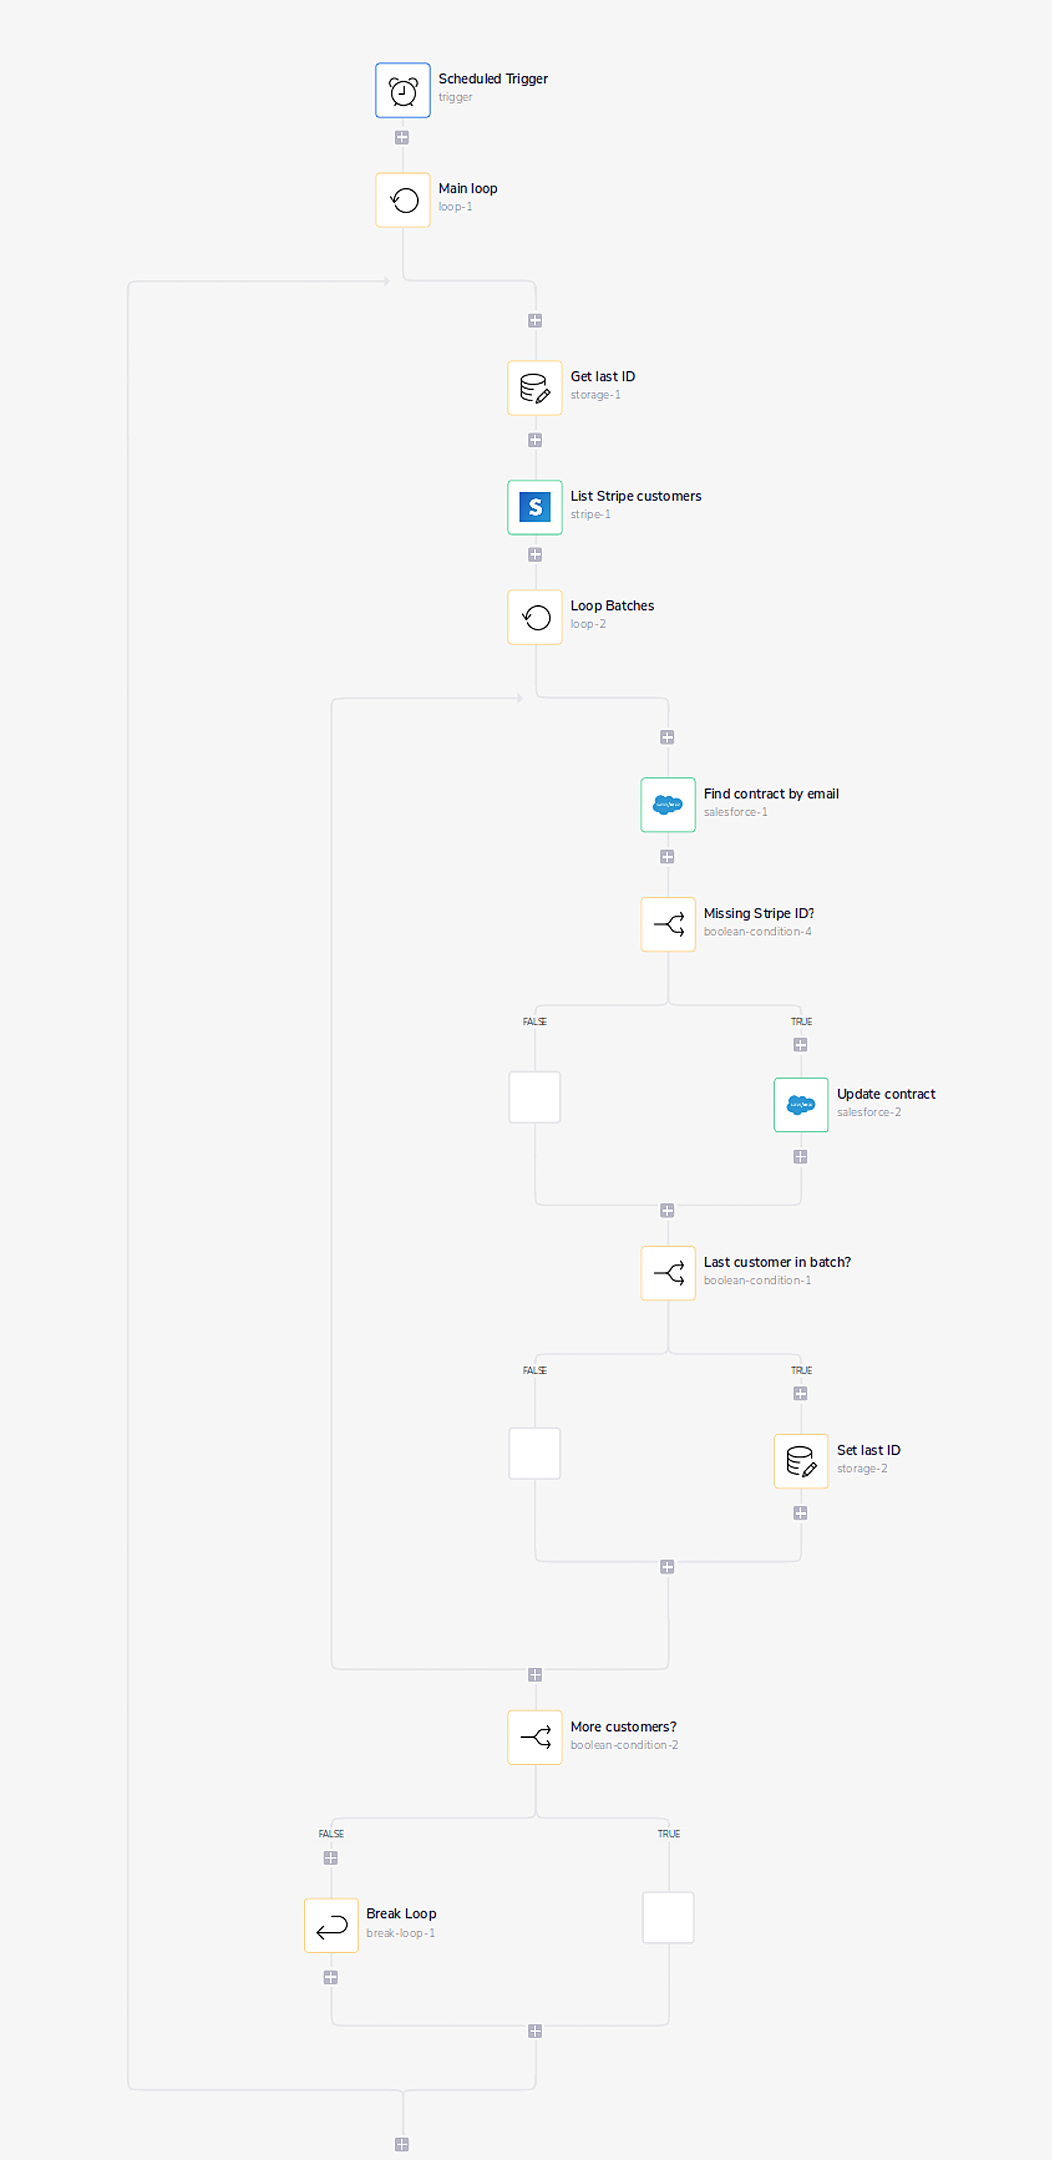 full_workflow.png